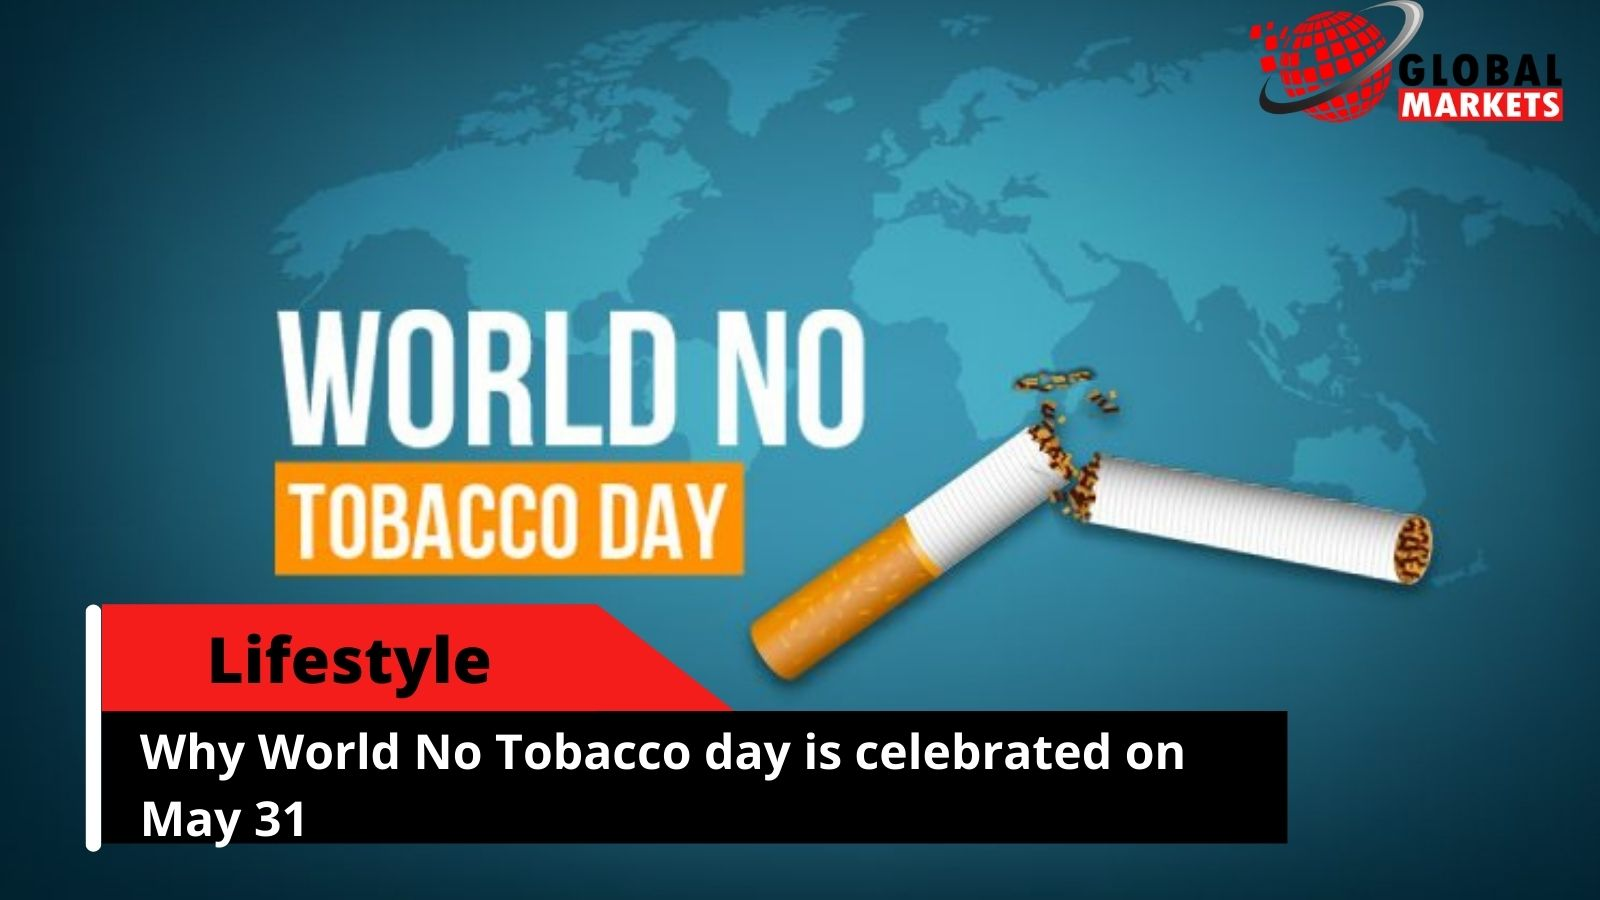 World No Tobacco Day: Why World No Tobacco day is celebrated on May 31